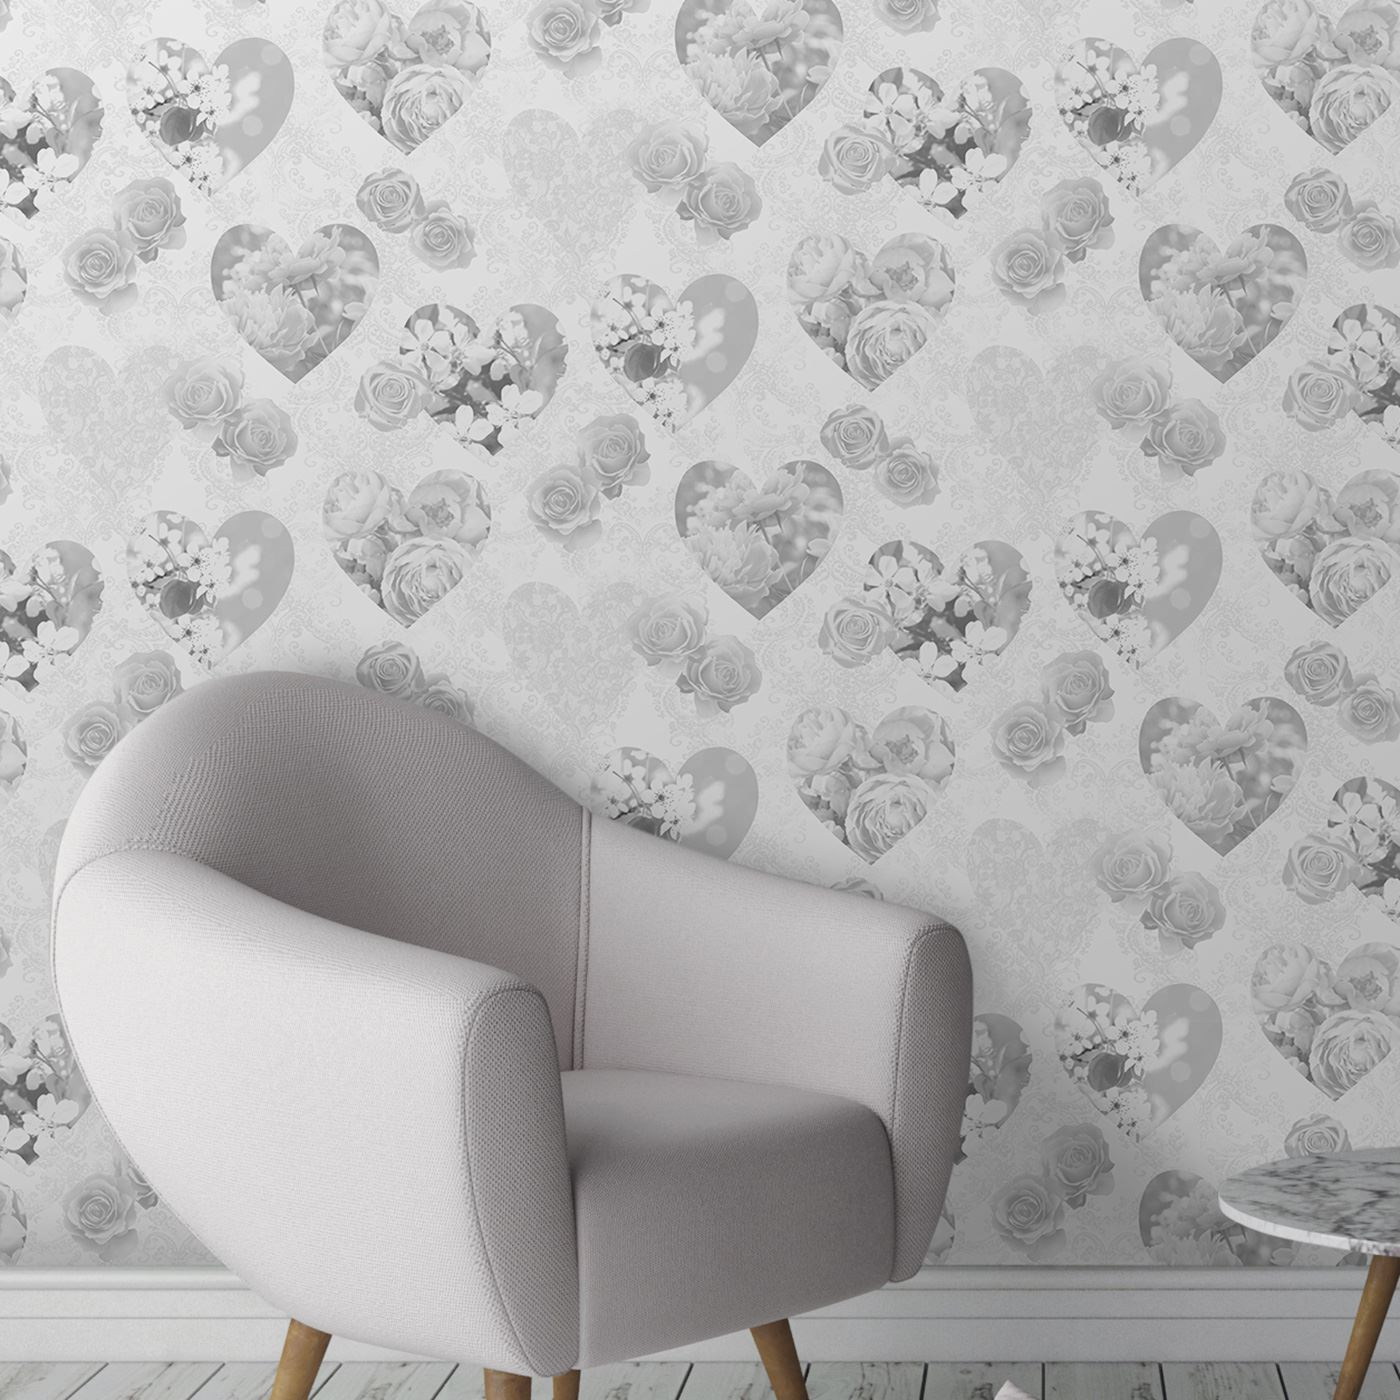 Details About Shabby Chic Floral Wallpaper In Various Designs Wall Decor New